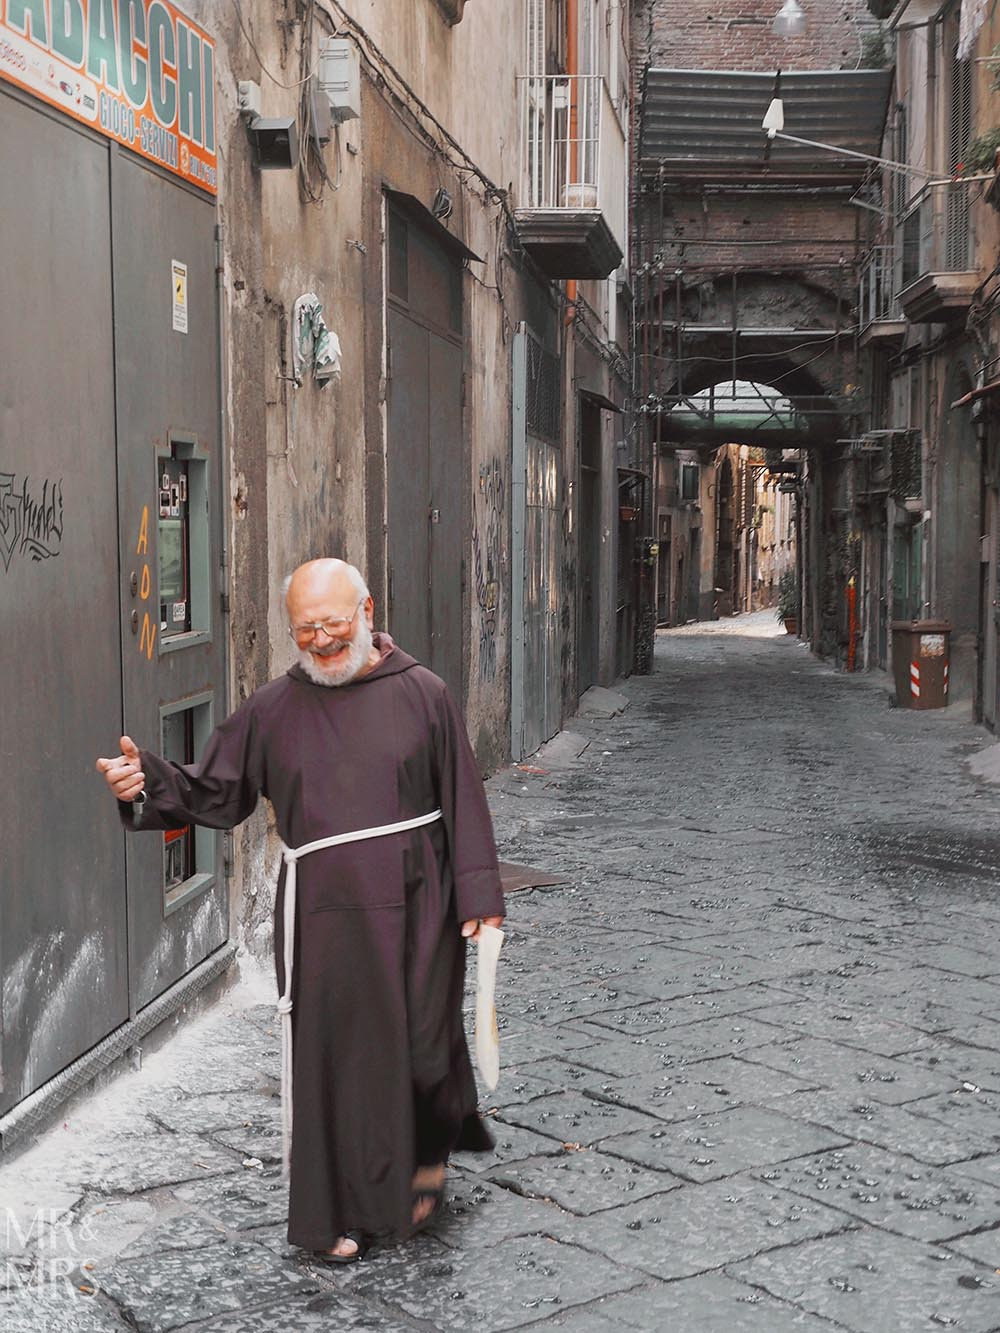 Is Naples safe? A monk wanders in Naples Italy